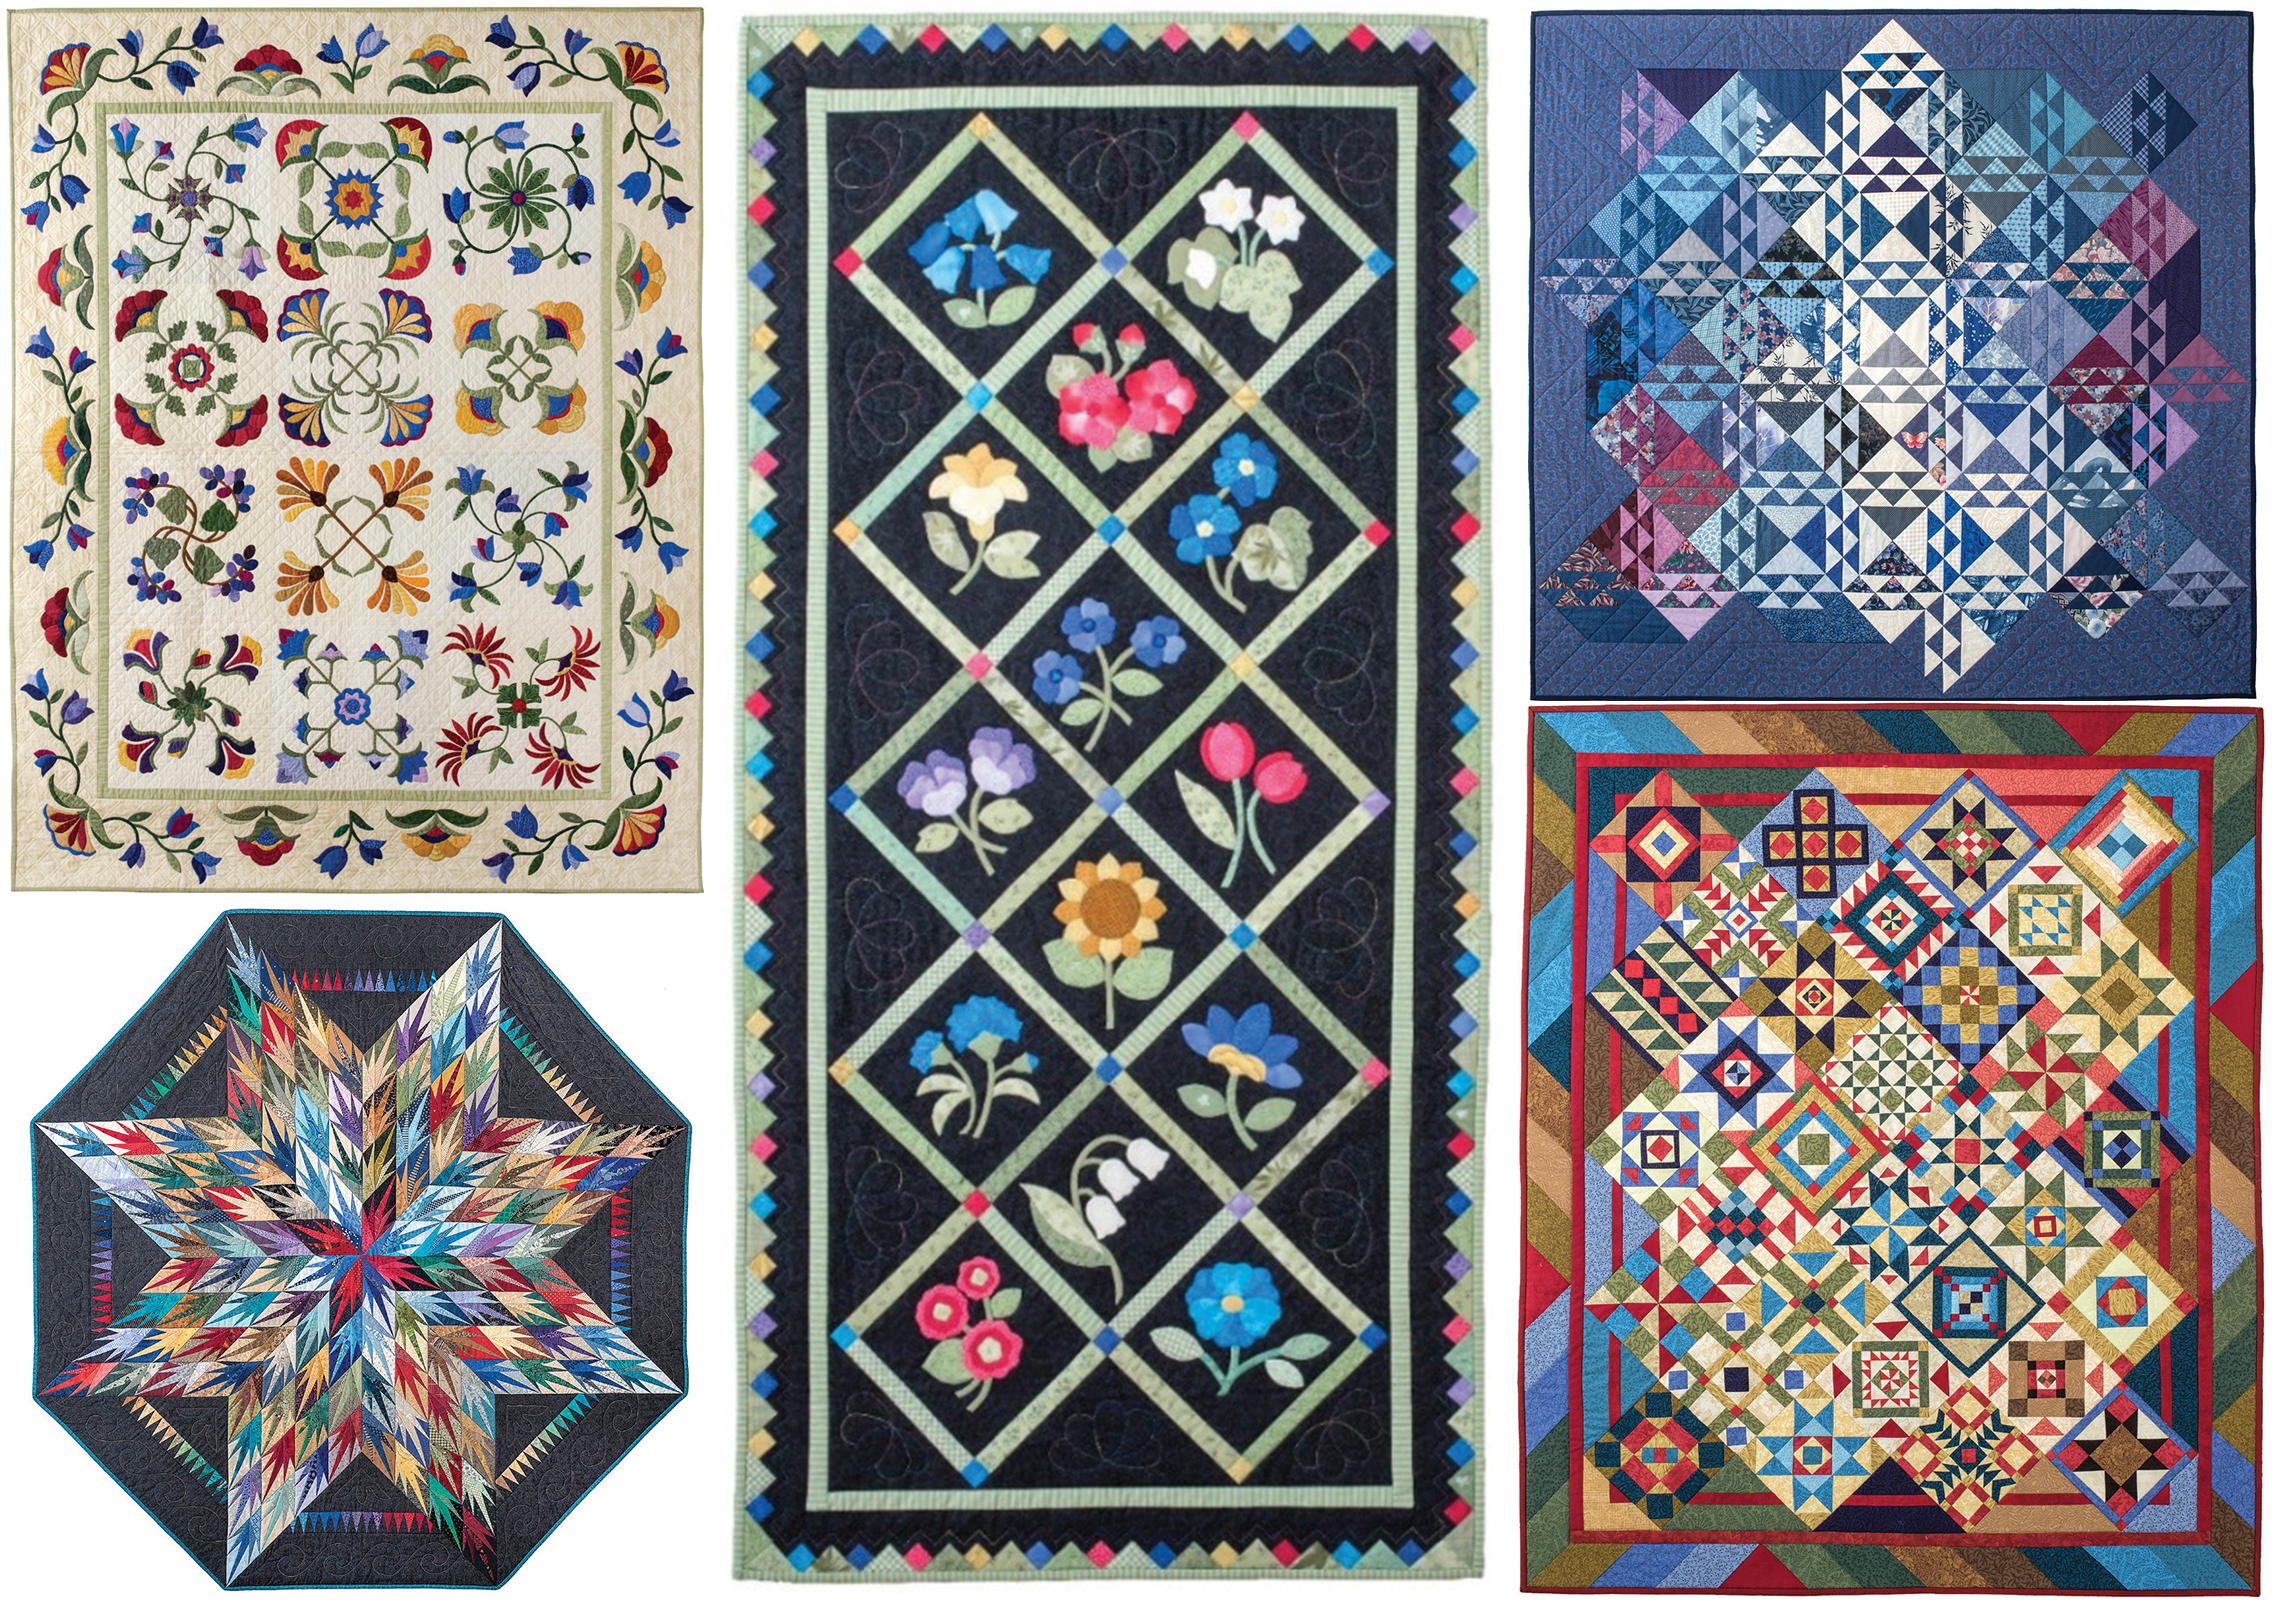 The amazing quilts that inspired the composers for the  Quilt Songs  cycle. You won't want to miss their musical interpretations!